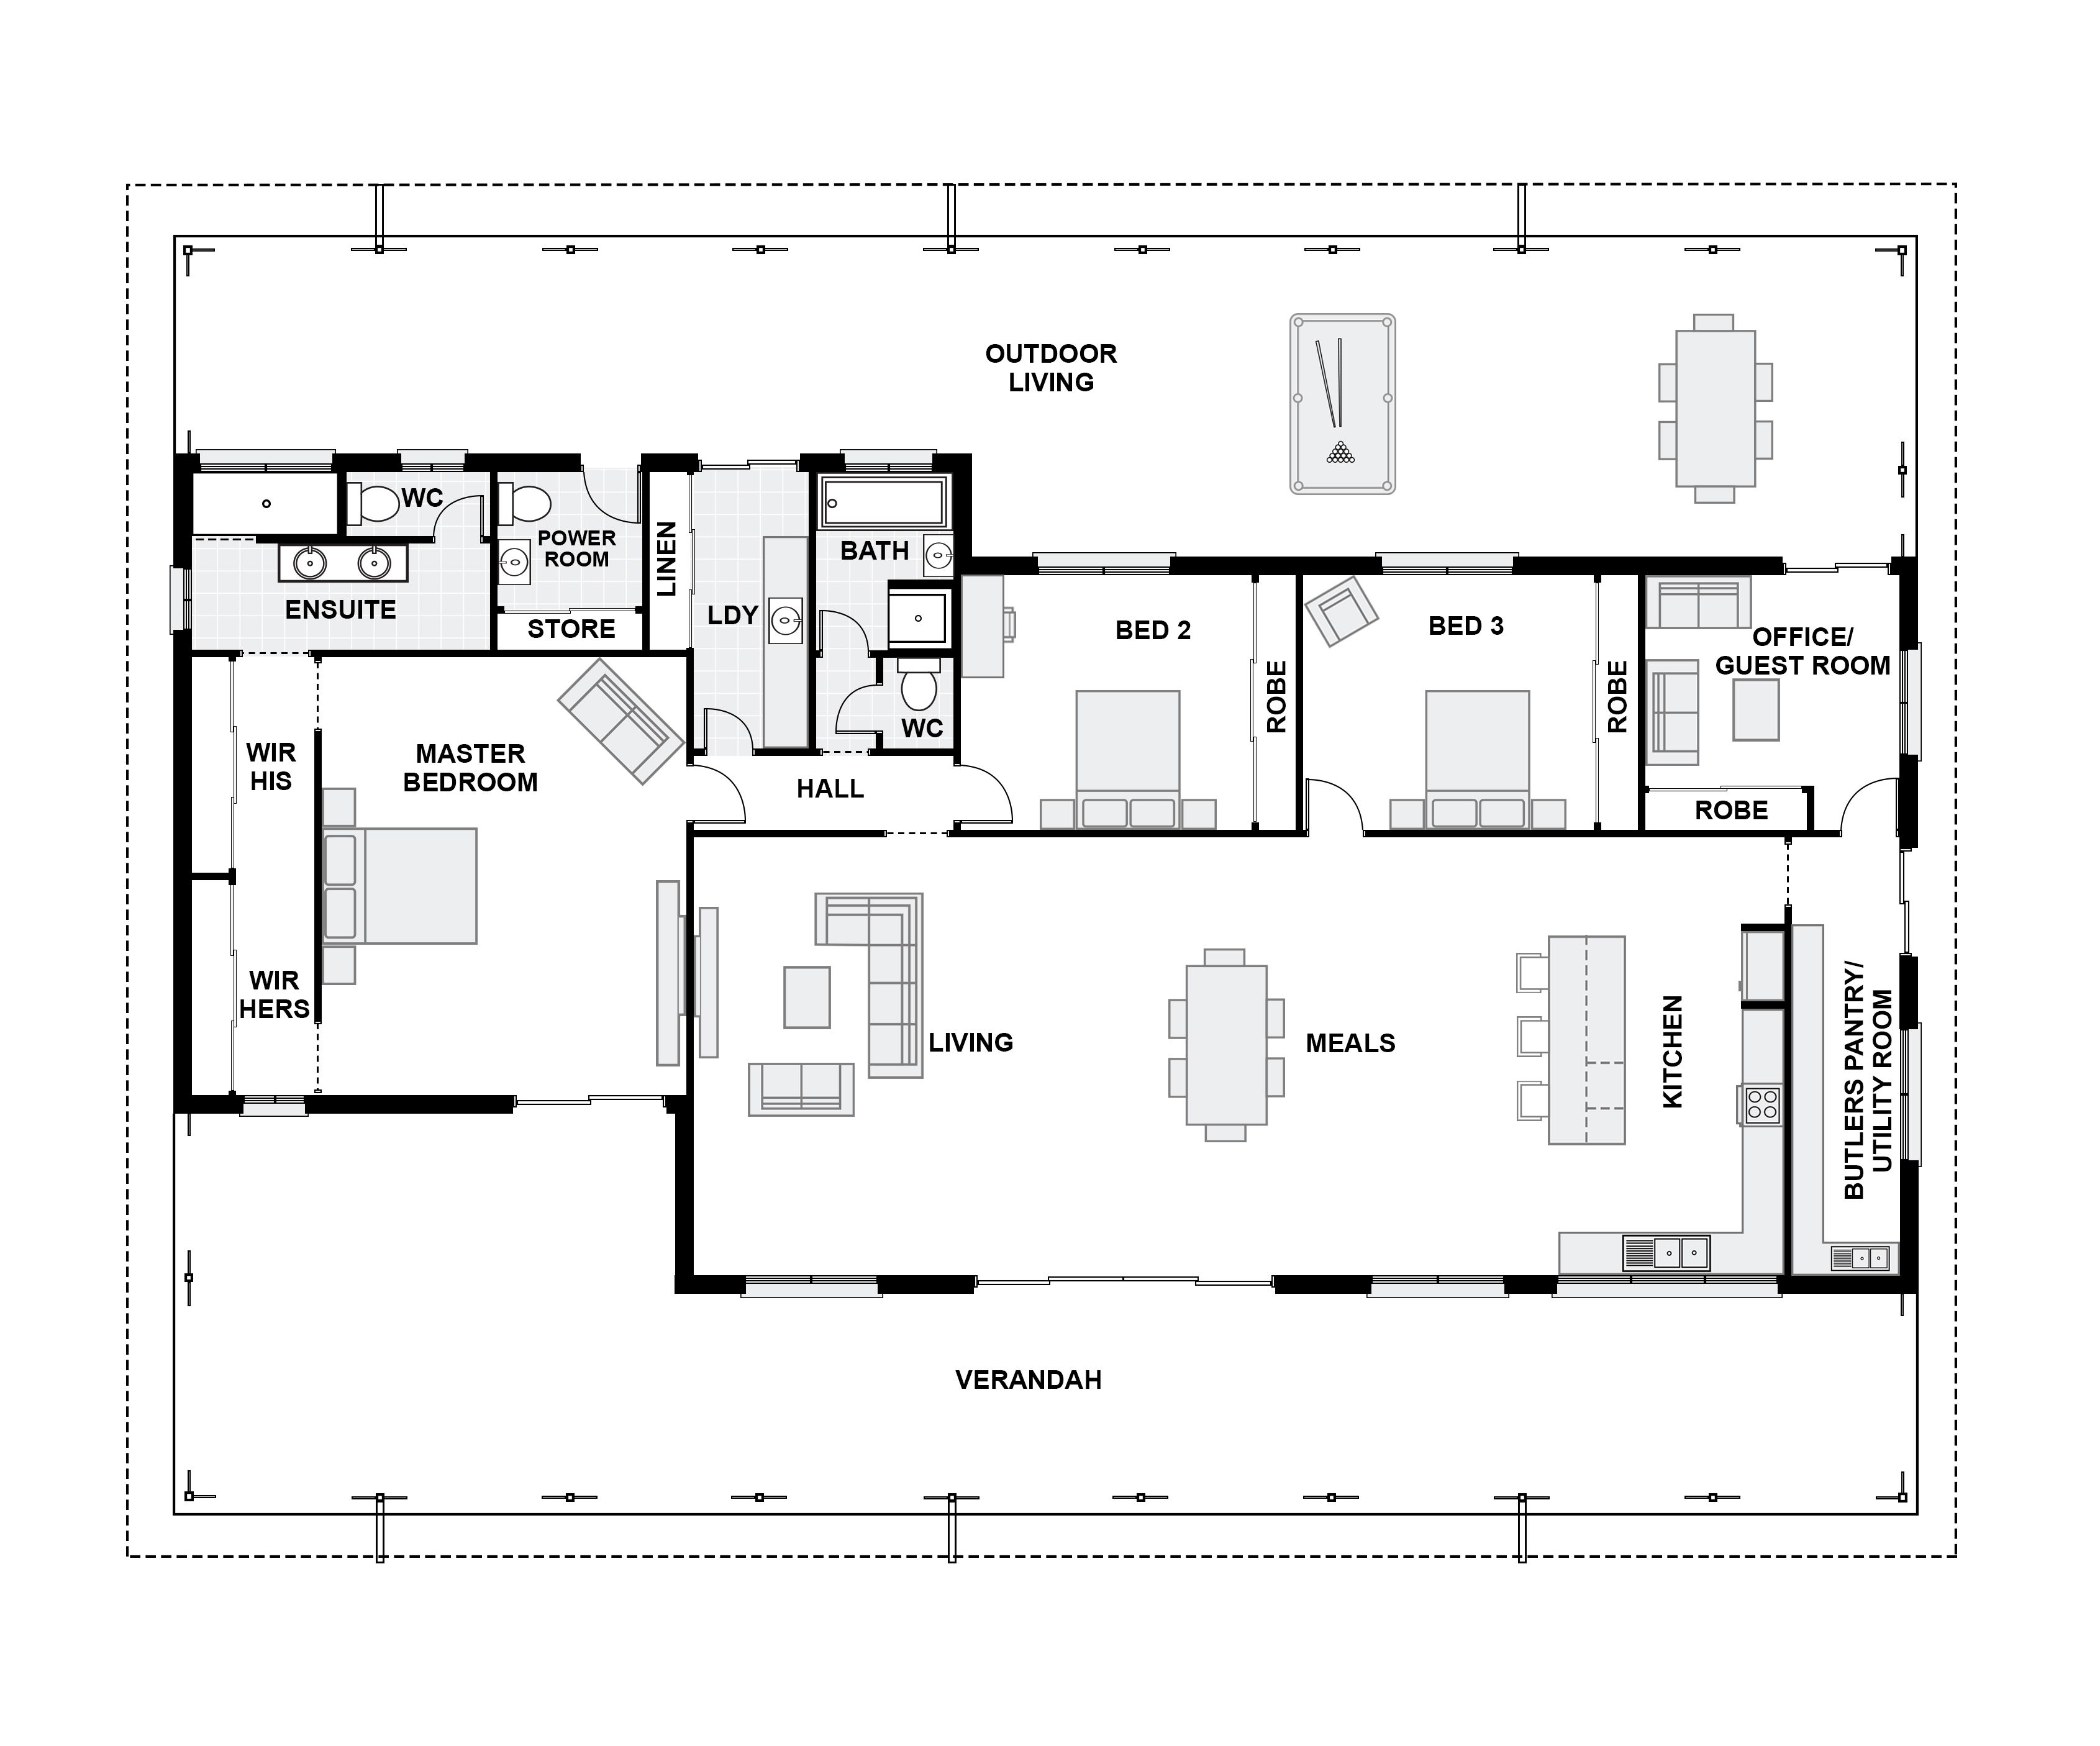 House Plan Well Suited 11 Home Plans And Prices Qld House Plans Queenslander House Plans With Photos Queenslander House House Plans